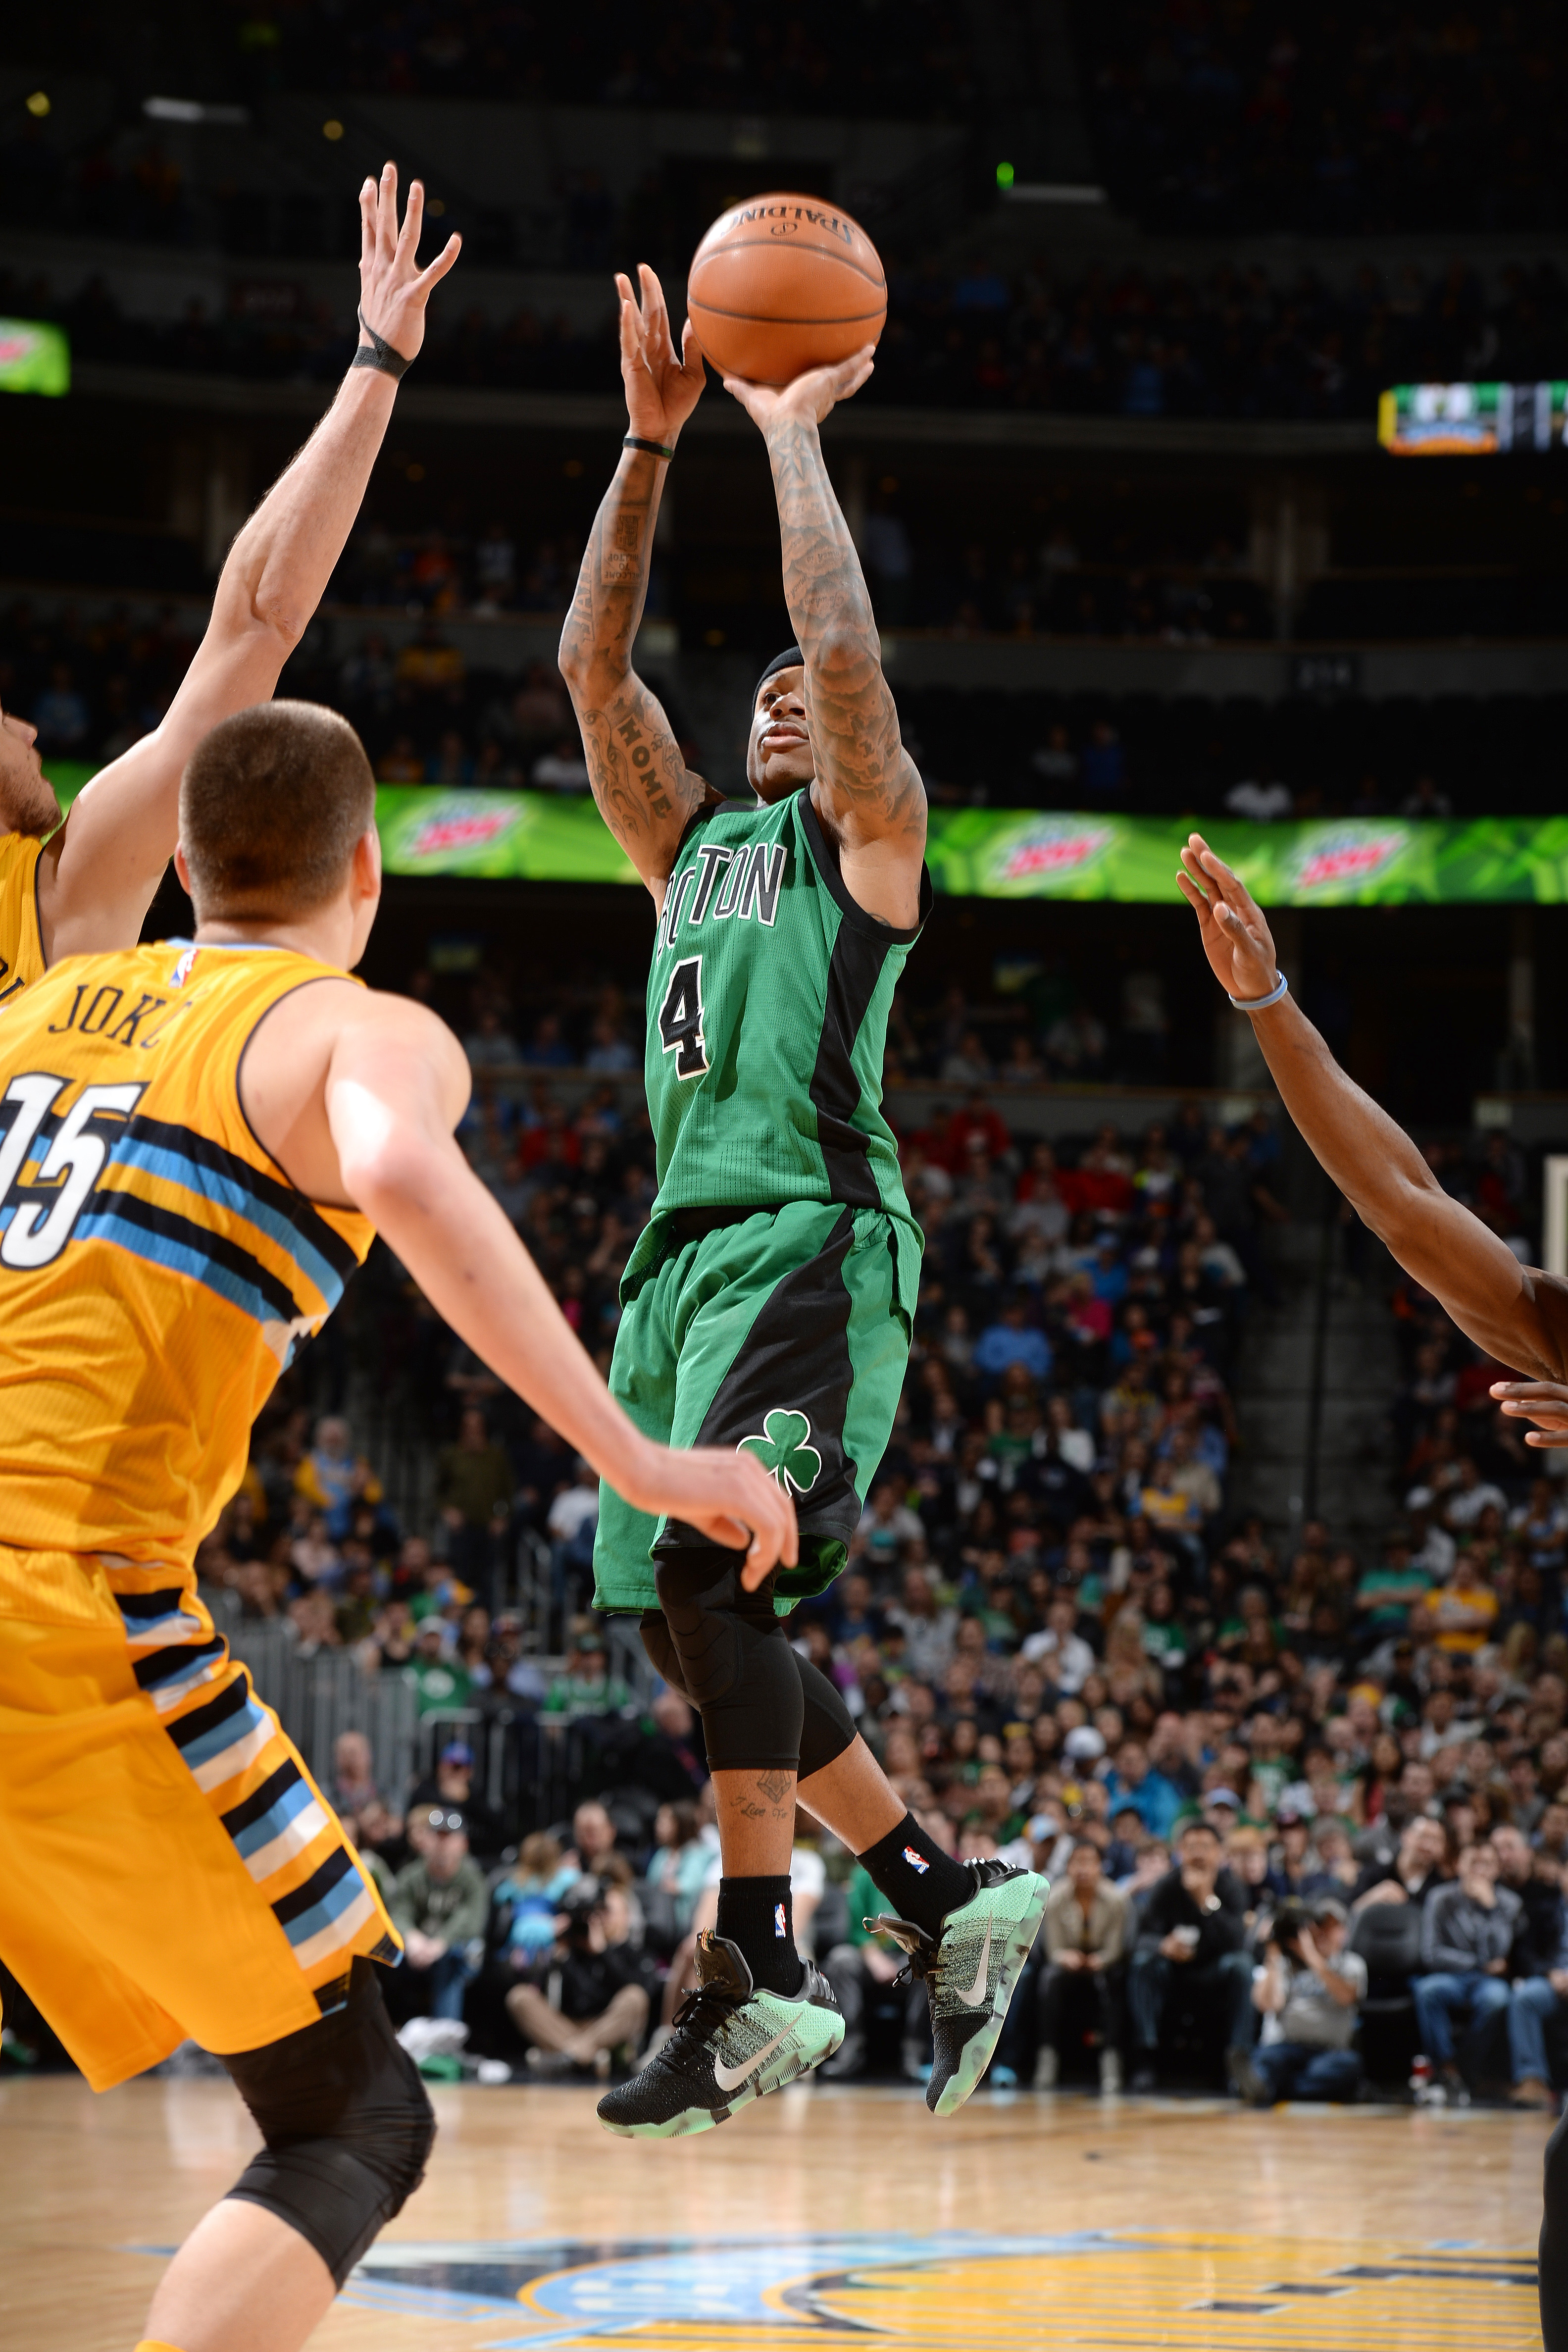 DENVER, CO - FEBRUARY 21: Isaiah Thomas #4 of the Boston Celtics shoots the ball during the game against the Denver Nuggets on February 21, 2016 at the Pepsi Center in Denver, Colorado. (Photo by Garrett Ellwood/NBAE via Getty Images)